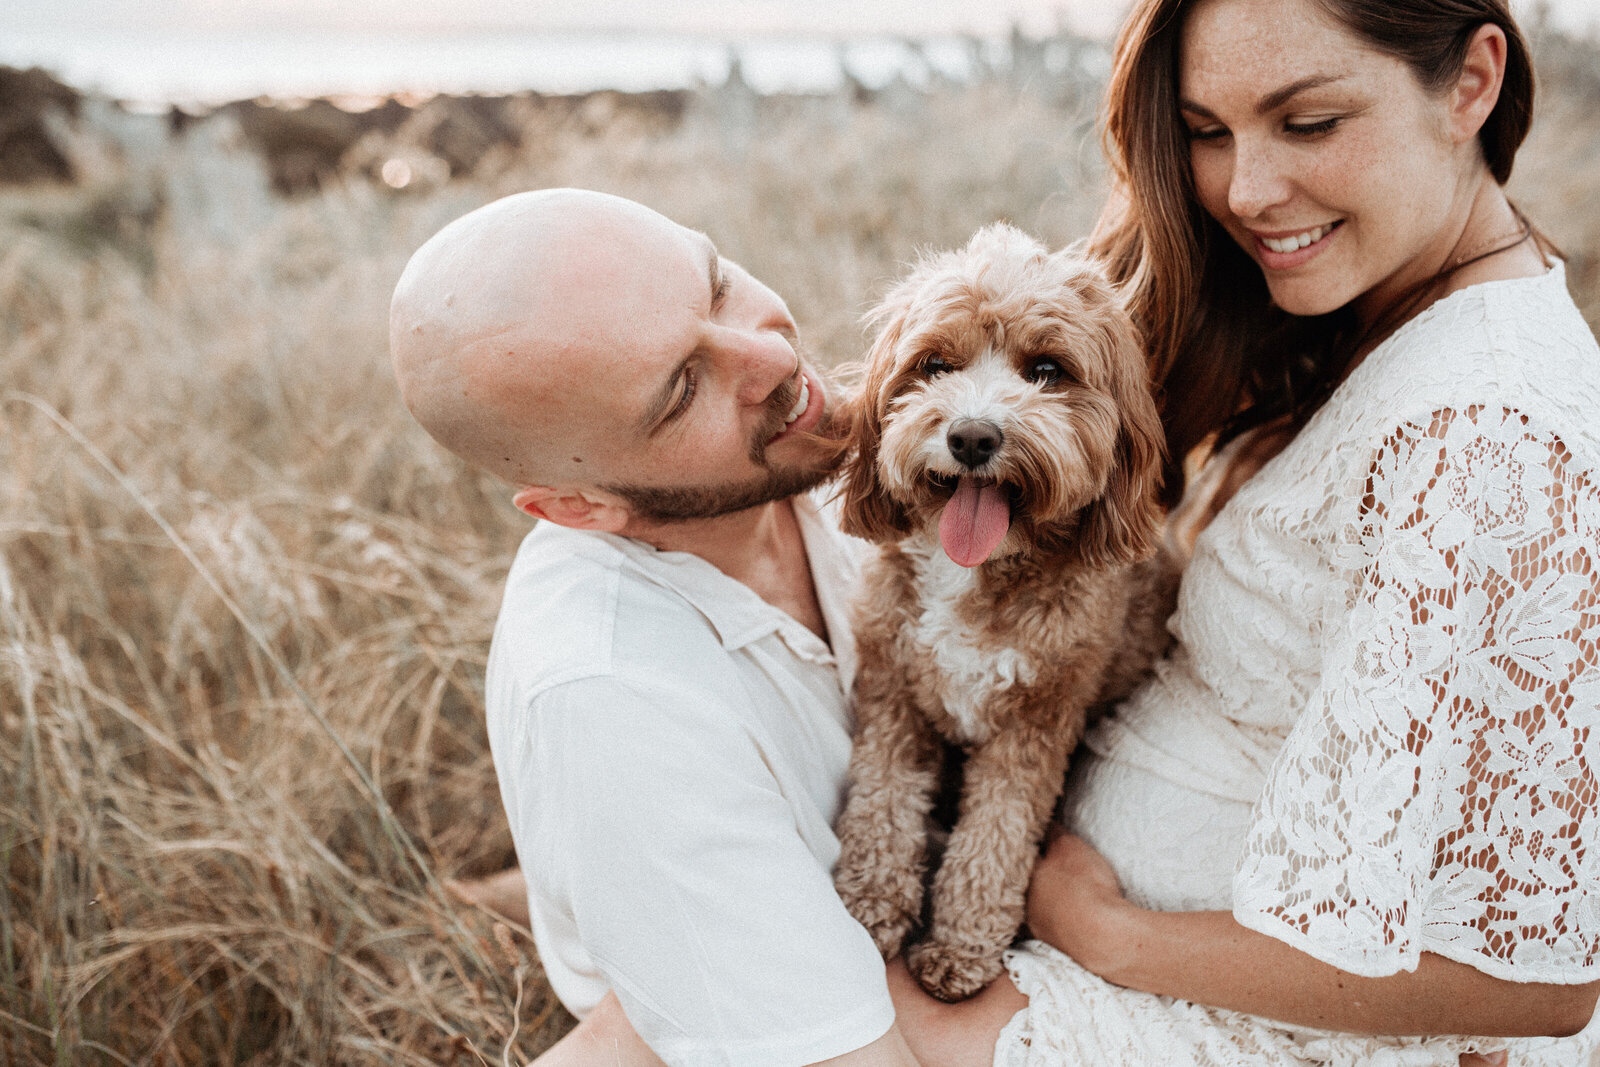 Natural lifestyle family photo of couple with dog for maternity photo session with Sapphire and Stone Photography Melbourne Maternity Photographer